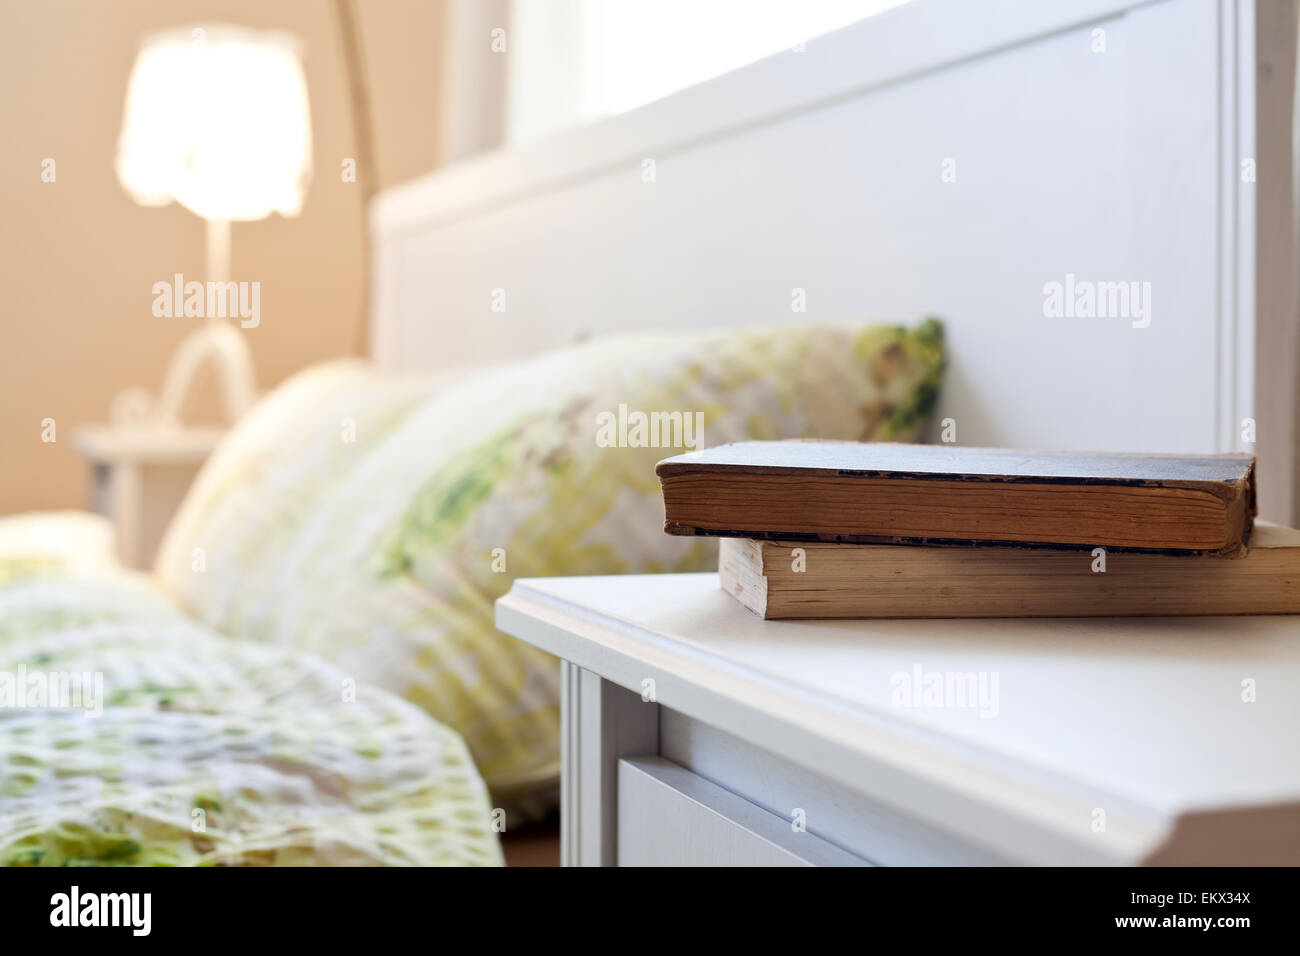 bedroom with books on nightstand - Stock Image